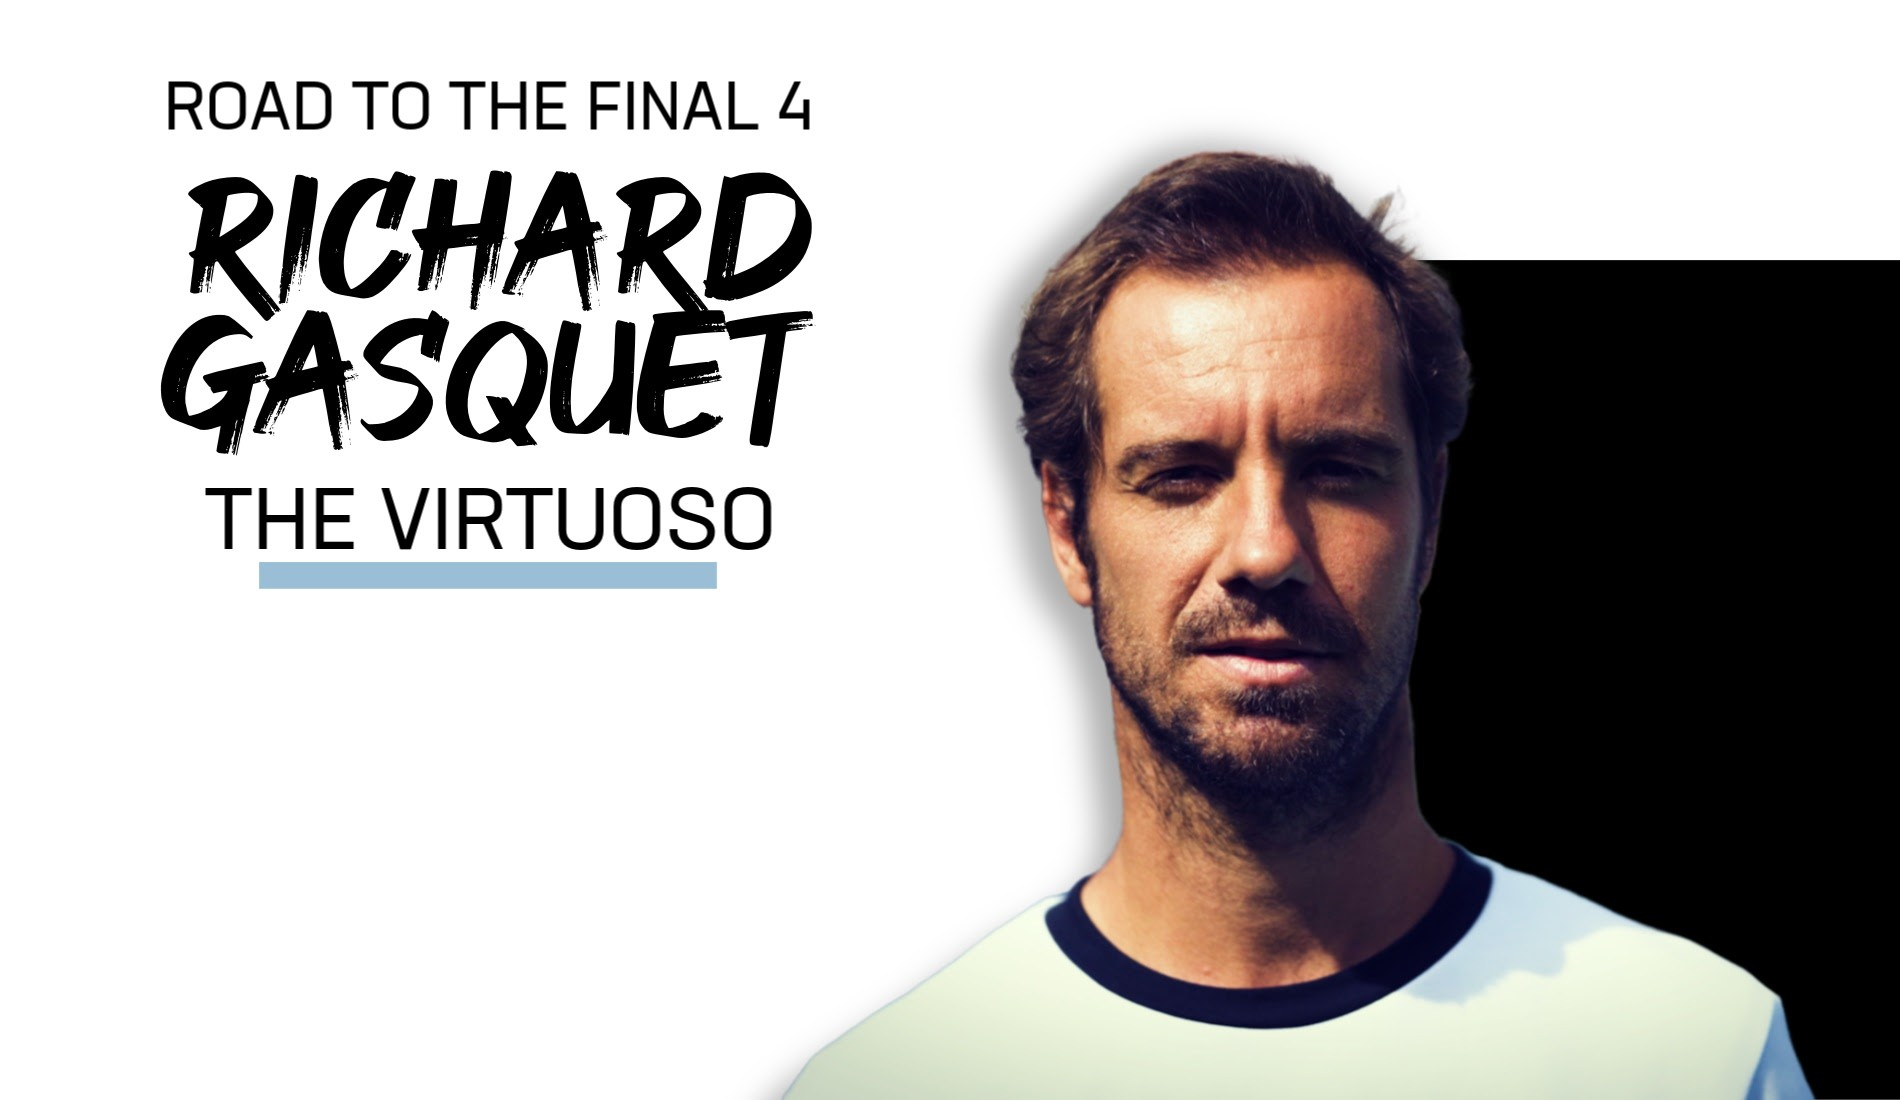 """UTS1 - Road to the Final 4: Richard Gasquet, """"The Virtuoso"""""""